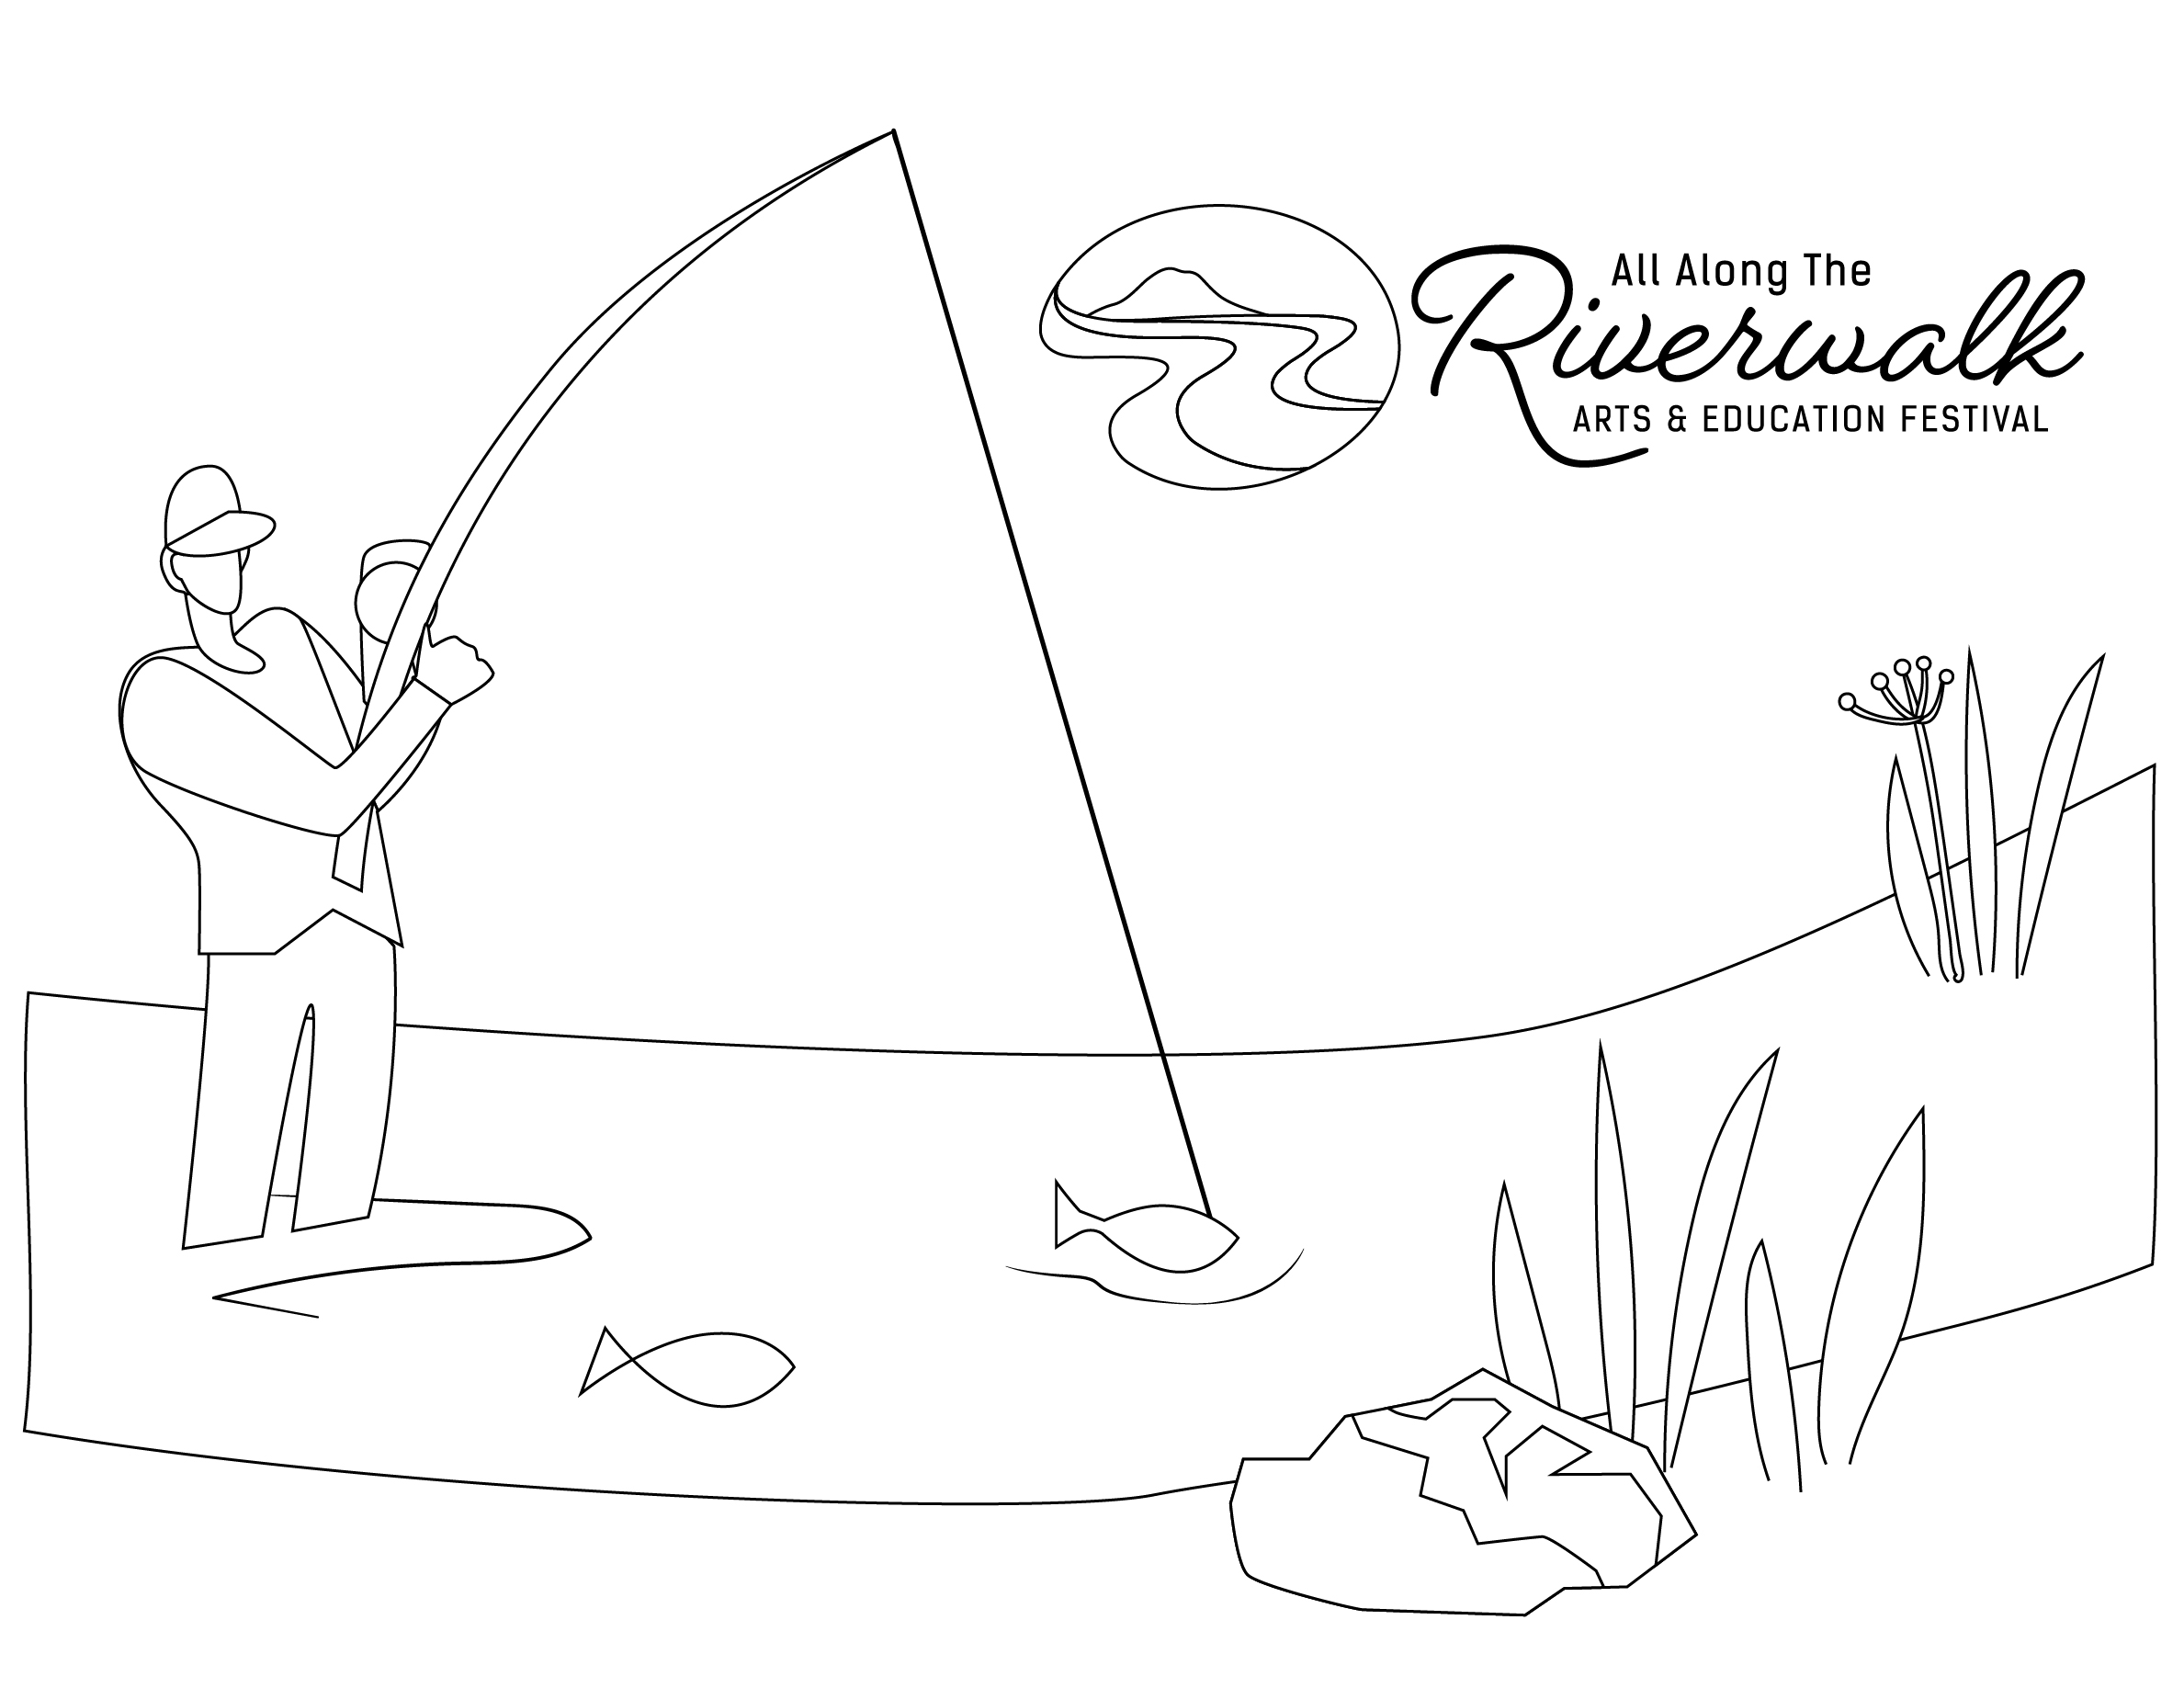 Fishing Rod Colouring Pages Coloring Printable Fish Astonishing One Two  Free Colori Bowl Template Excellent Engaging Page Prin Best Enchanting  Appealing Books F Ocean Marvellous Of   octas   1837x2377